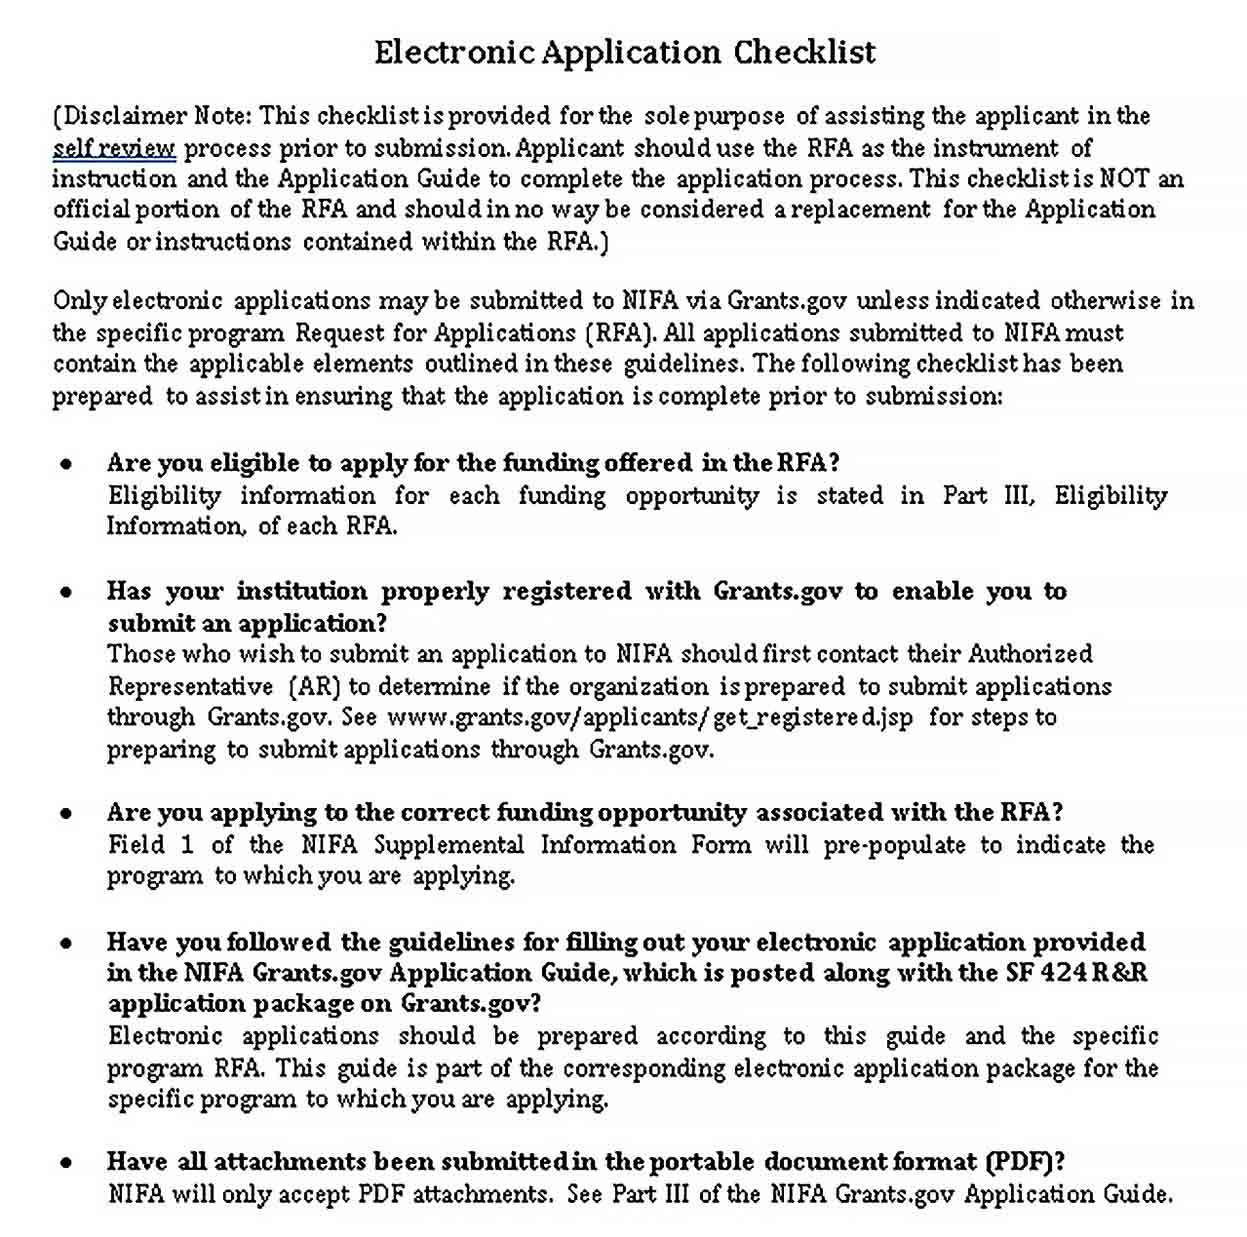 Electronic Application Checklist